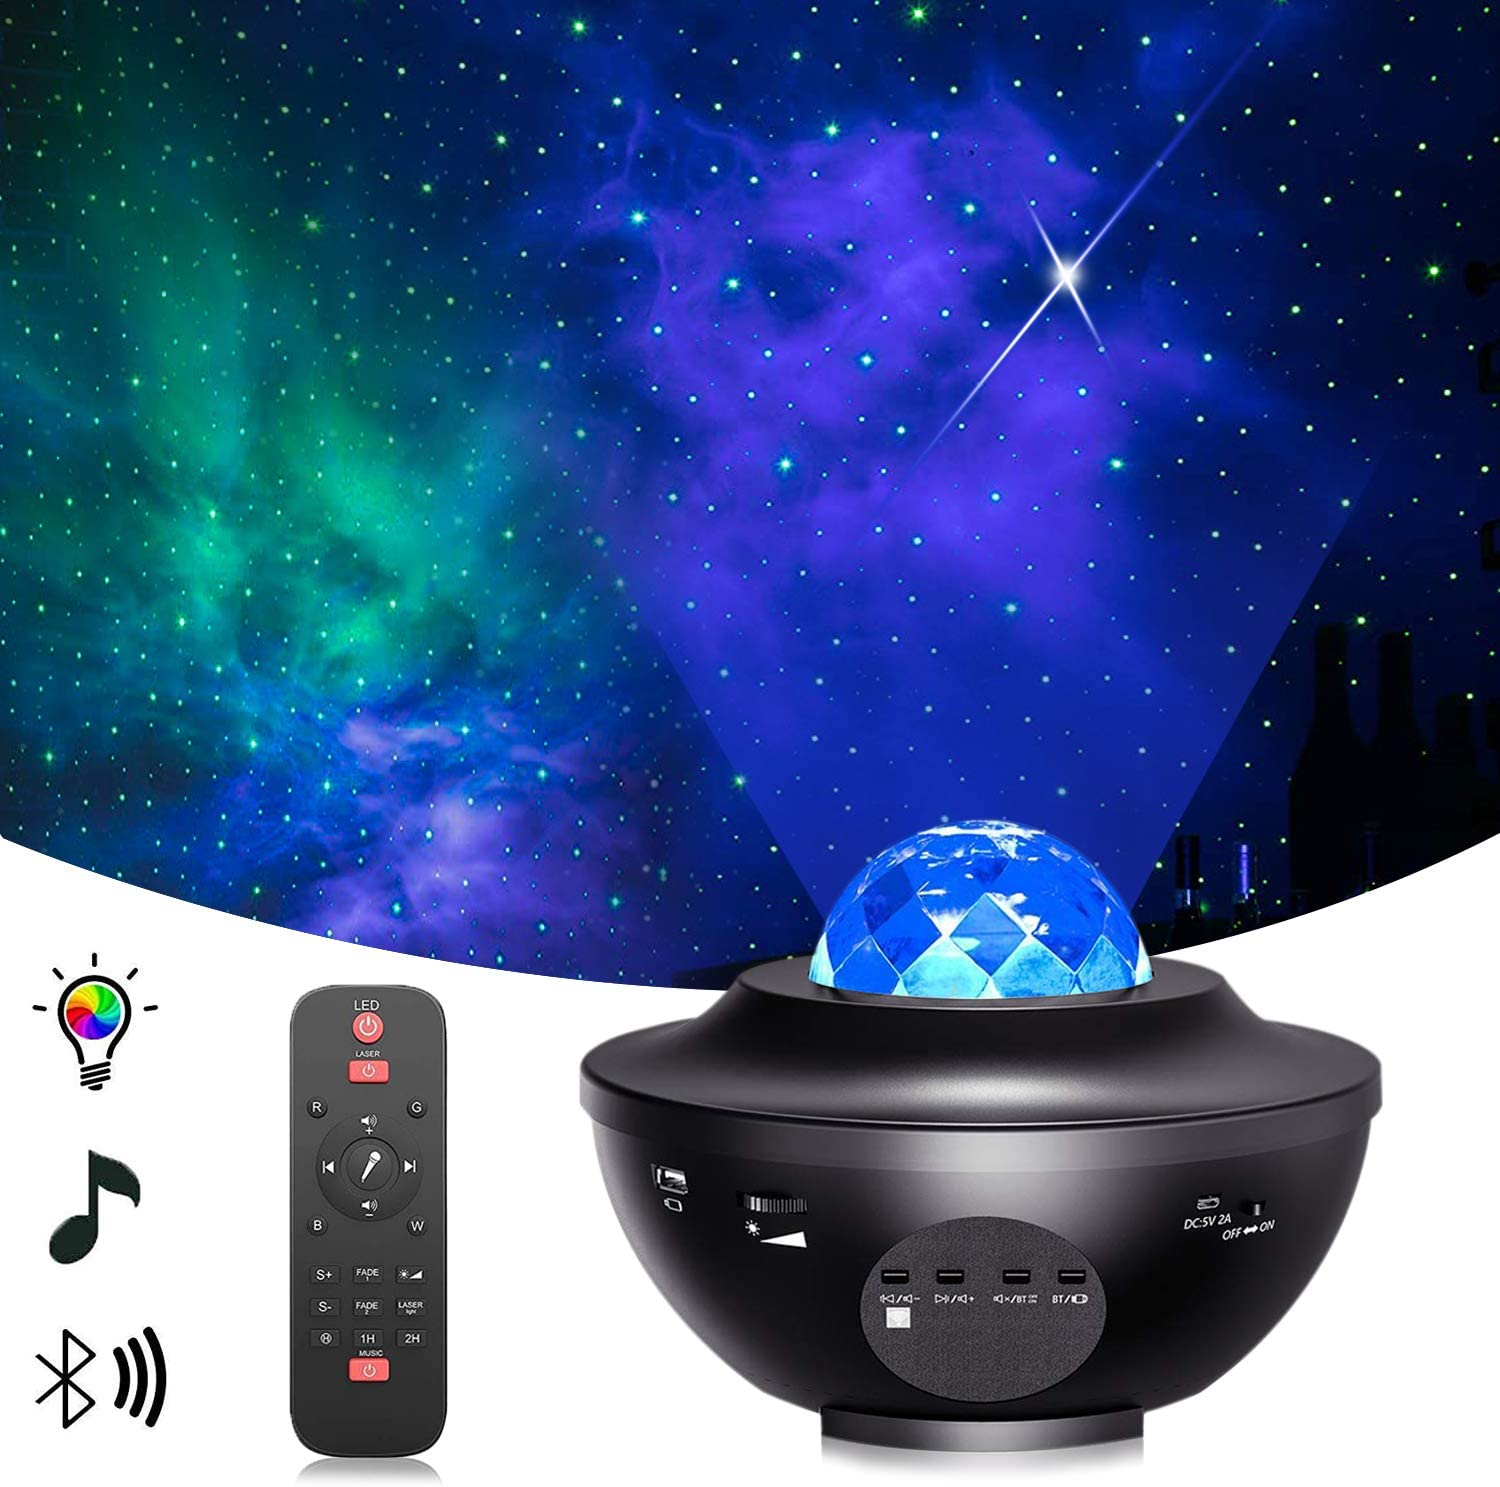 STARRY PROJECTOR LIGHT X7-Pro Star LED Galaxy Ocean Wave Projector Bluetooth Music Speaker for Baby Bedroom,Game Rooms,Party,Home Theatre,Night Light Ambiance, Black